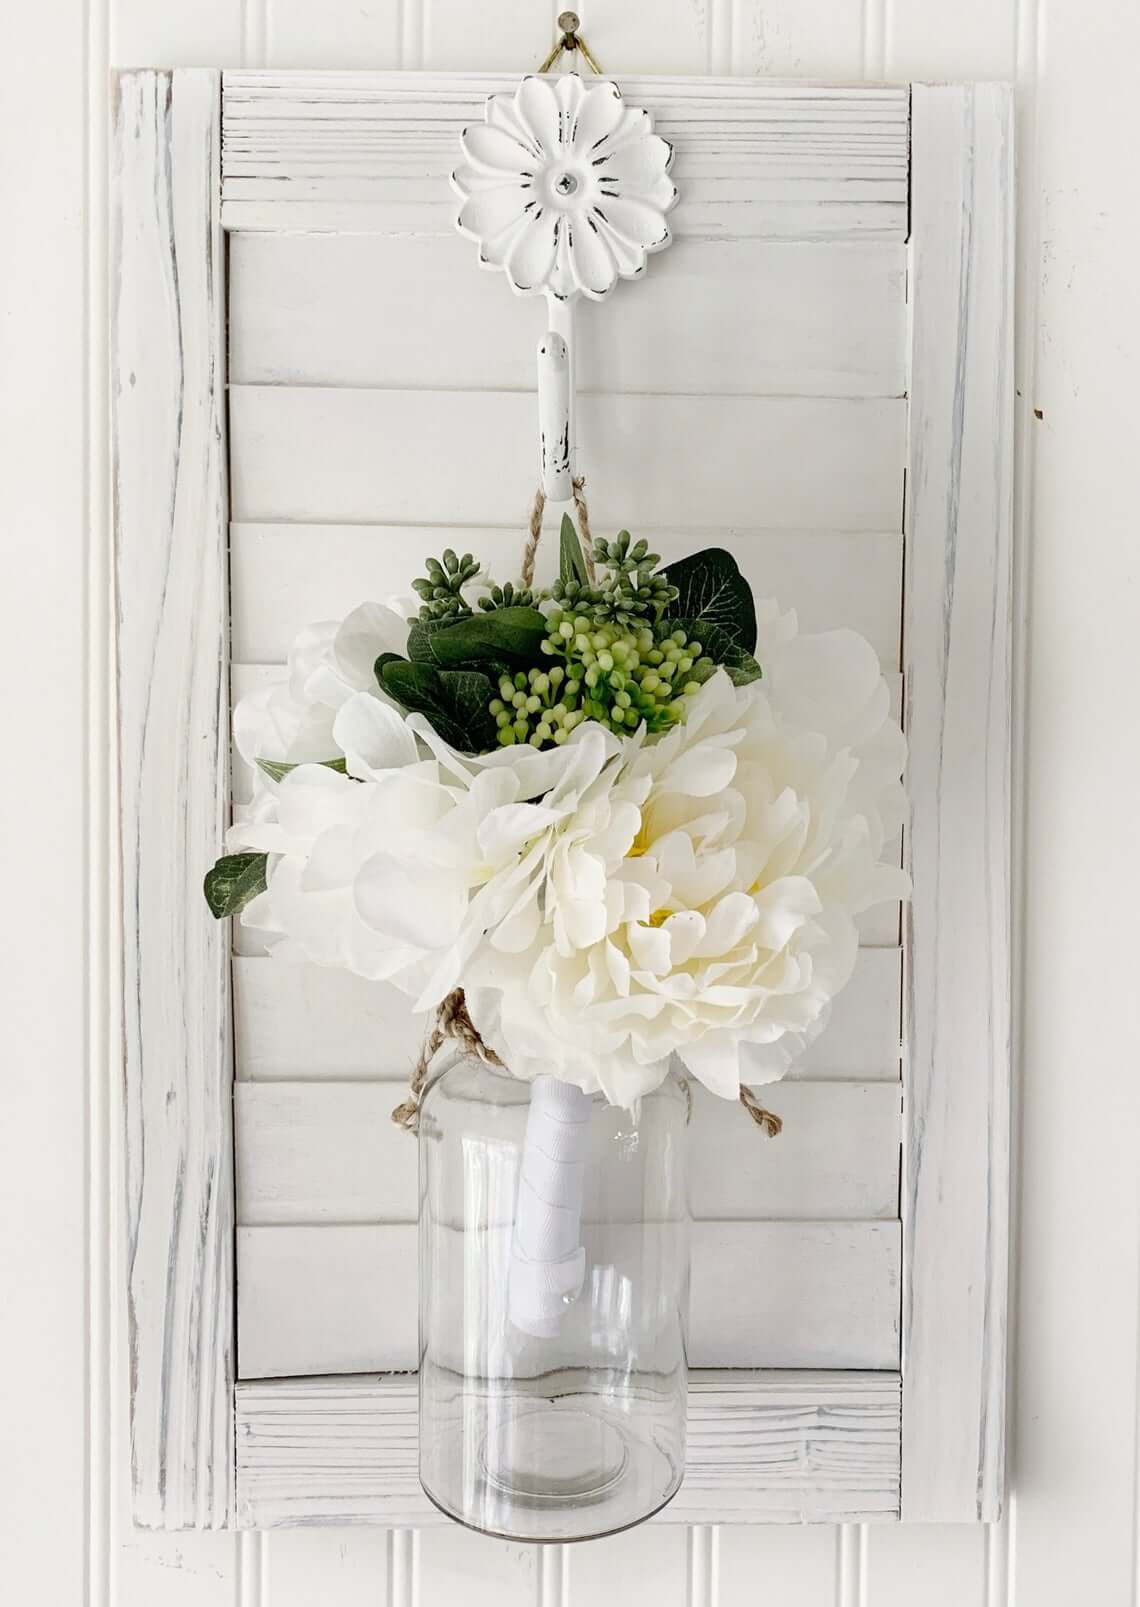 Distressed Wall Floral Sconce Décor